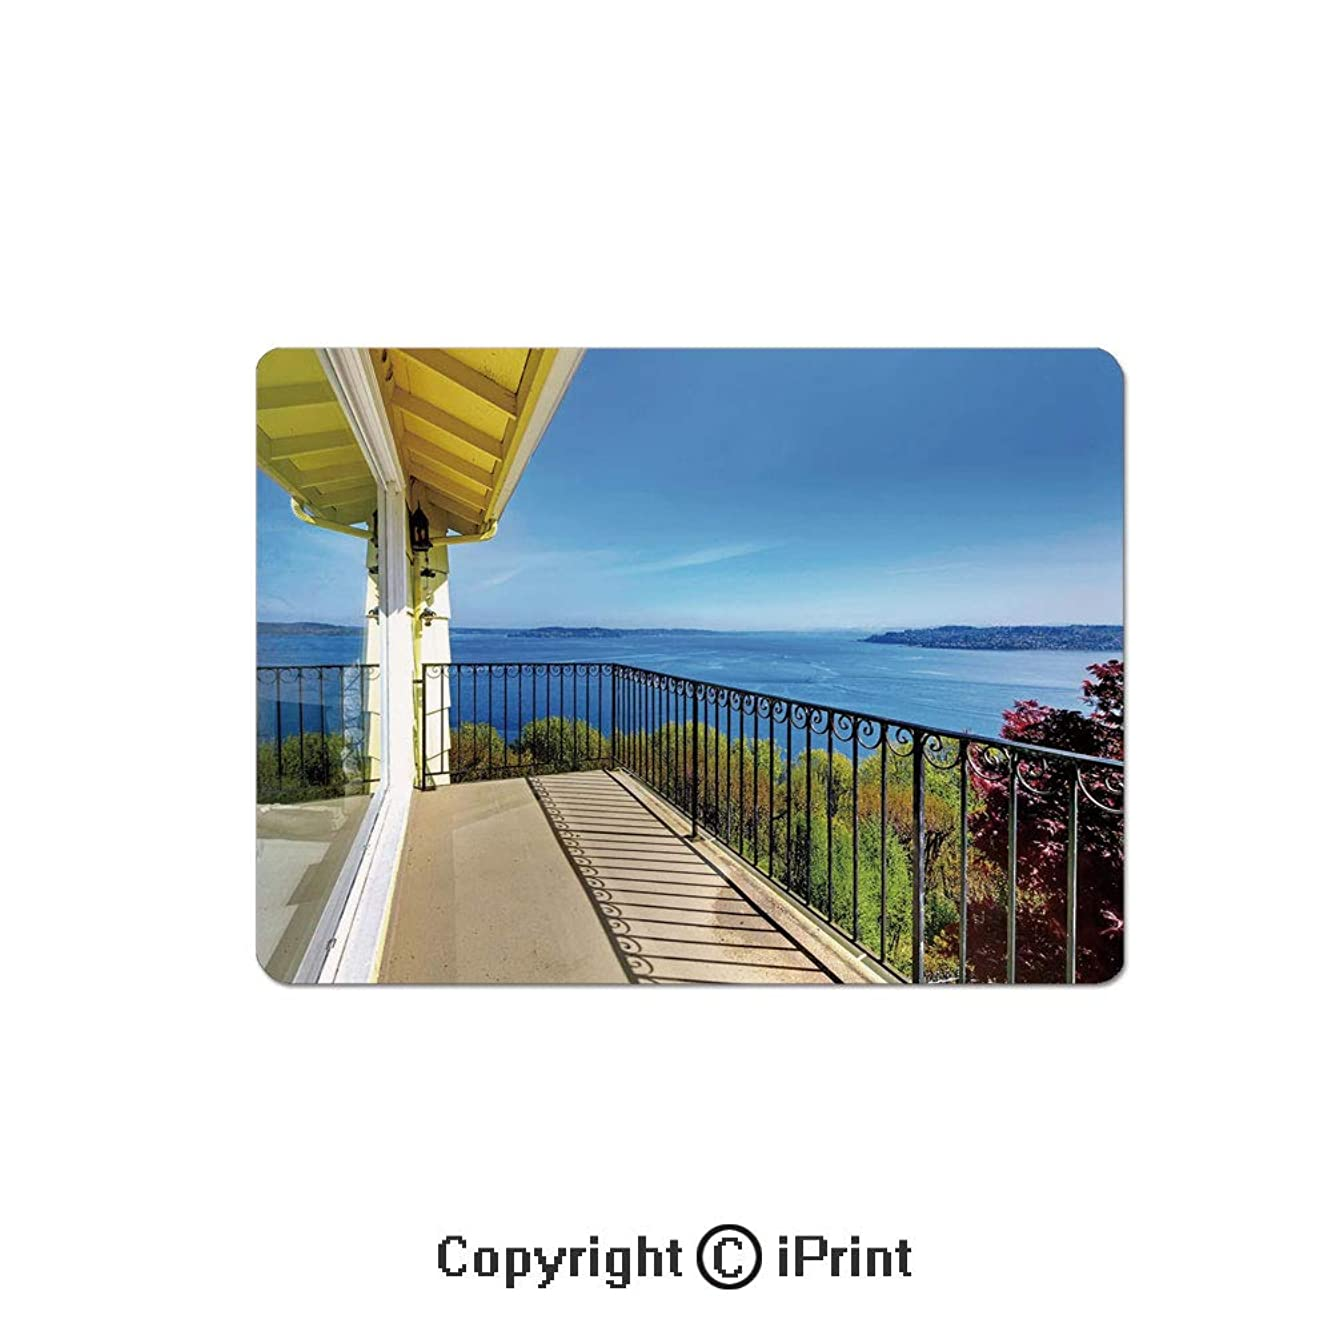 Oversized Mouse Pad,House Balcony in Summer Sunny Day Ocean Seascape Art Photo Gaming Keyboard Pad,9.8x11.8 inch Non-Slip Office Computer Desk Mat,Light Brown Blue and Green